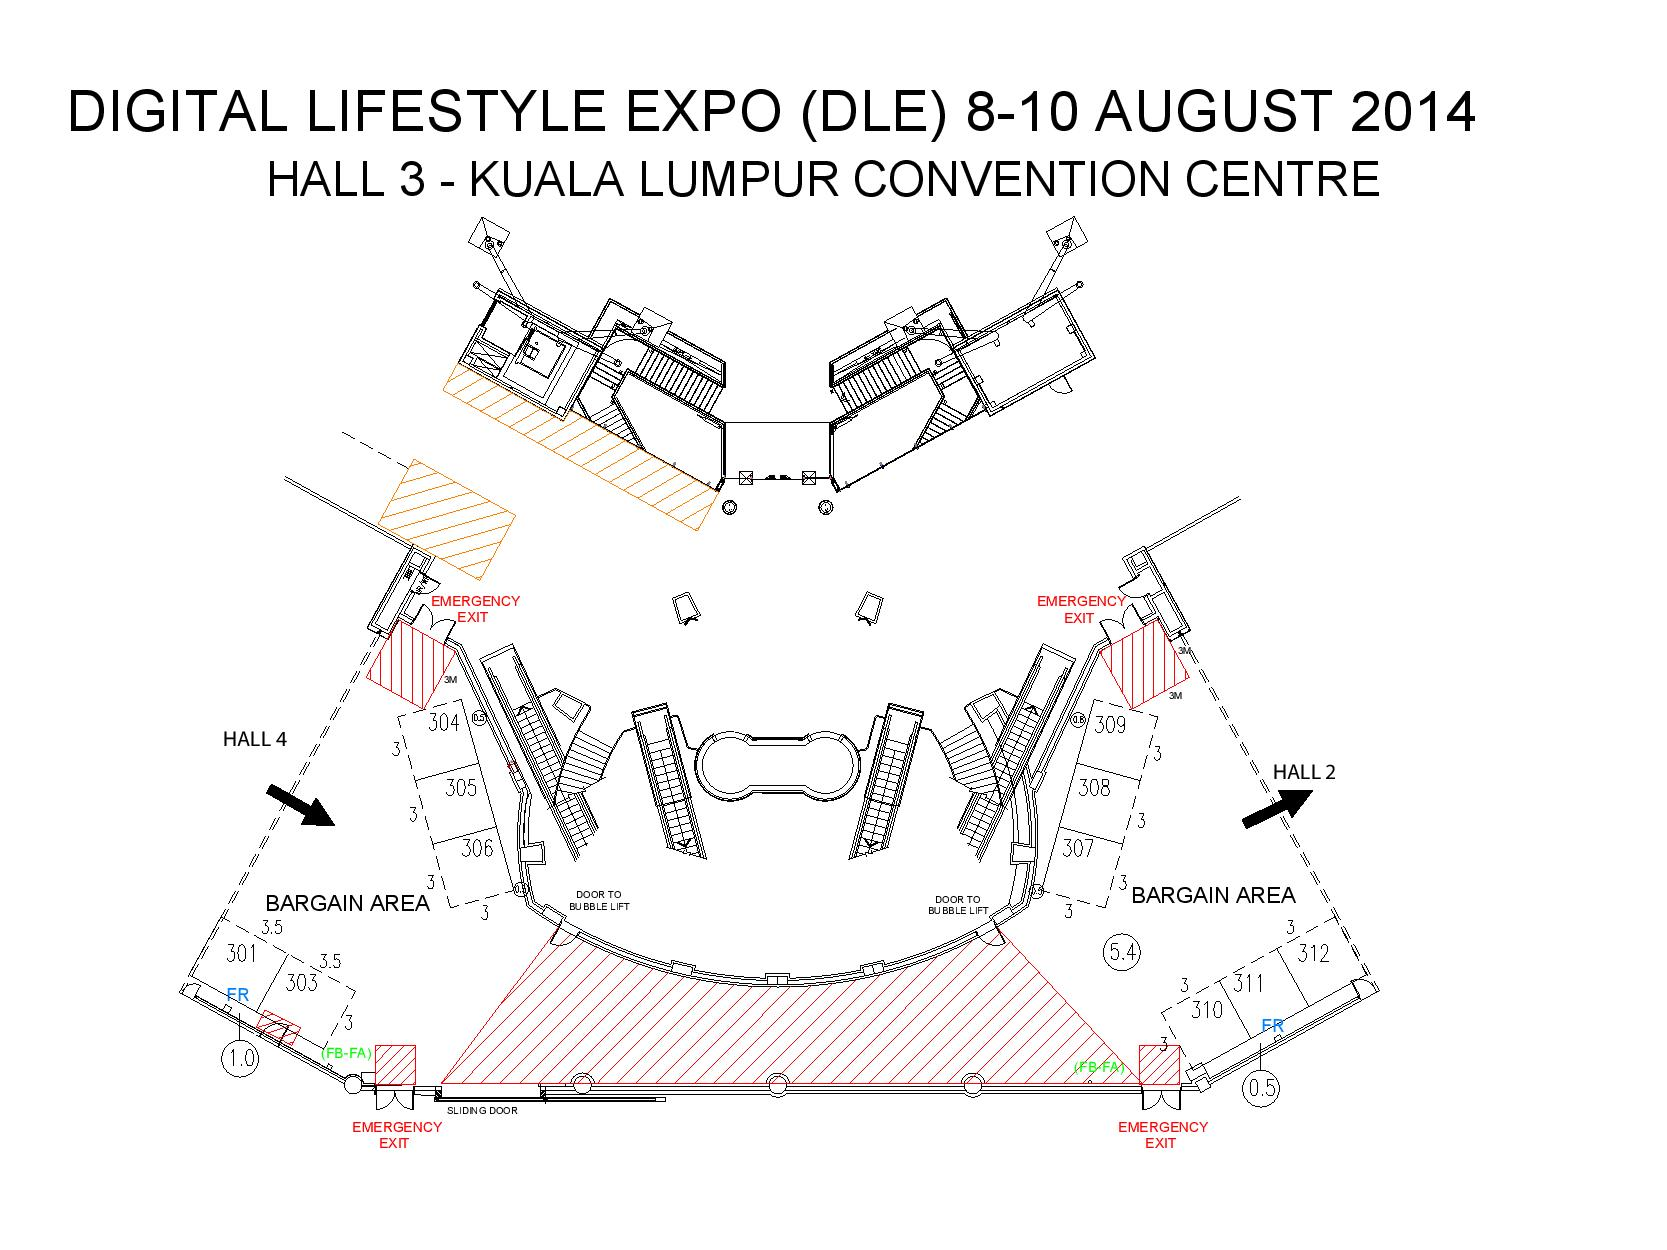 Digital Lifestyle Expo Dle